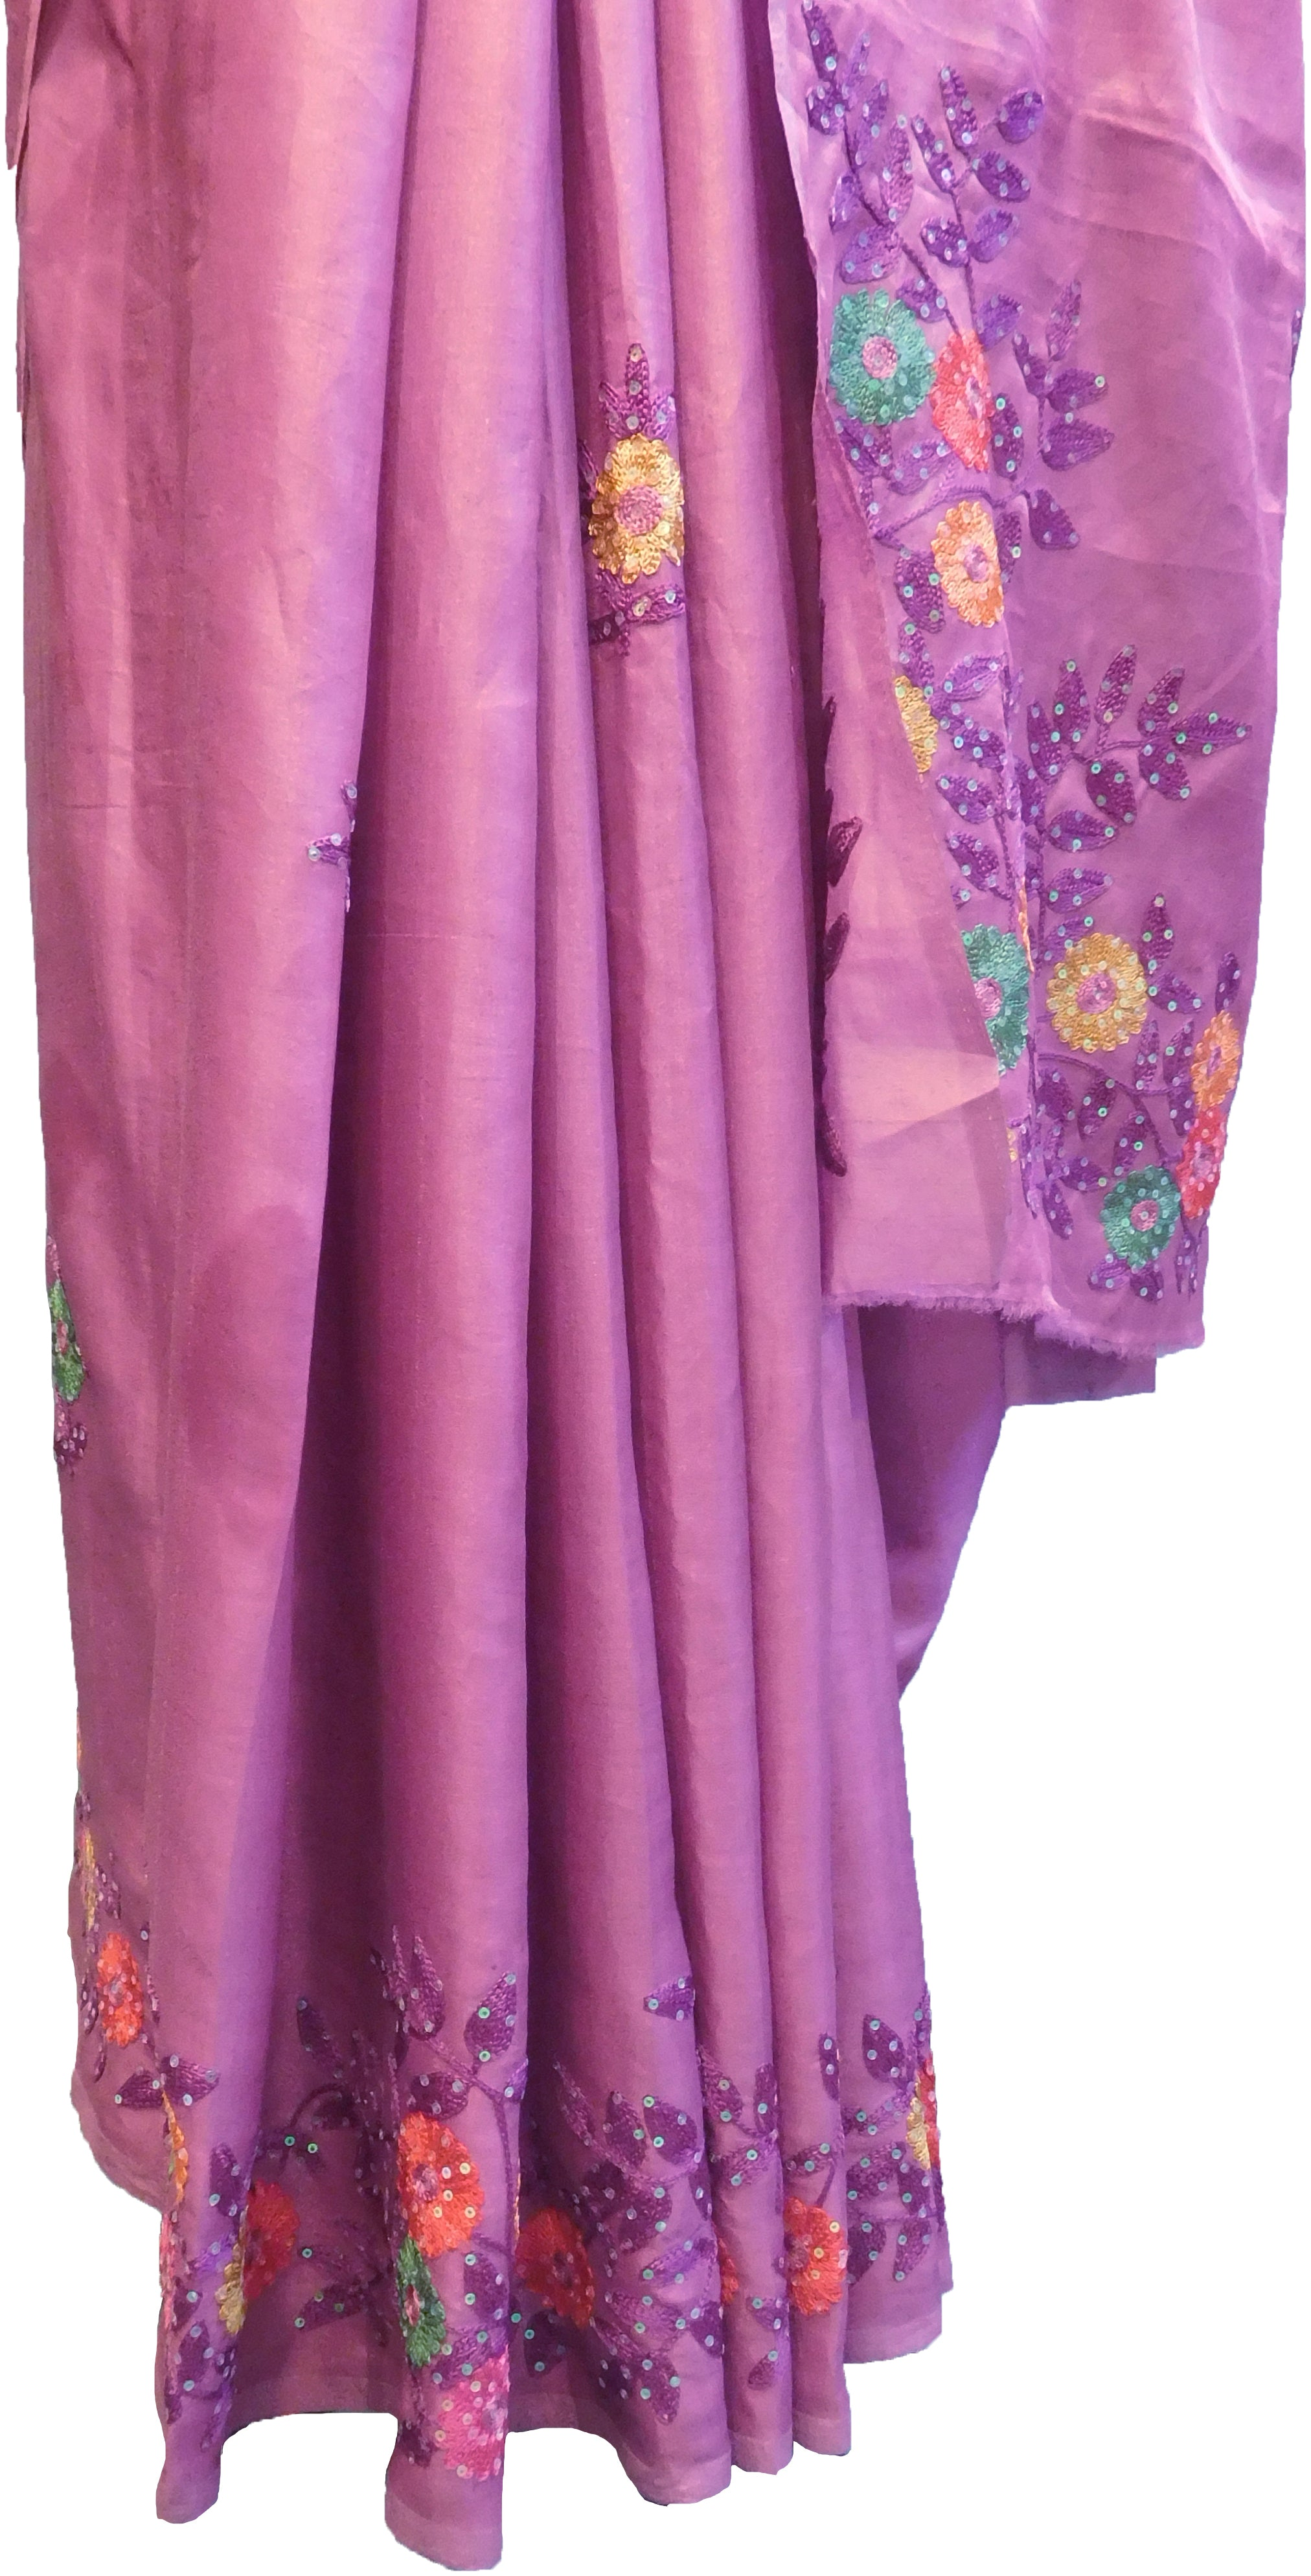 SMSAREE Lavender Designer Wedding Partywear Silk Stone & Sequence Hand Embroidery Work Bridal Saree Sari With Blouse Piece F350